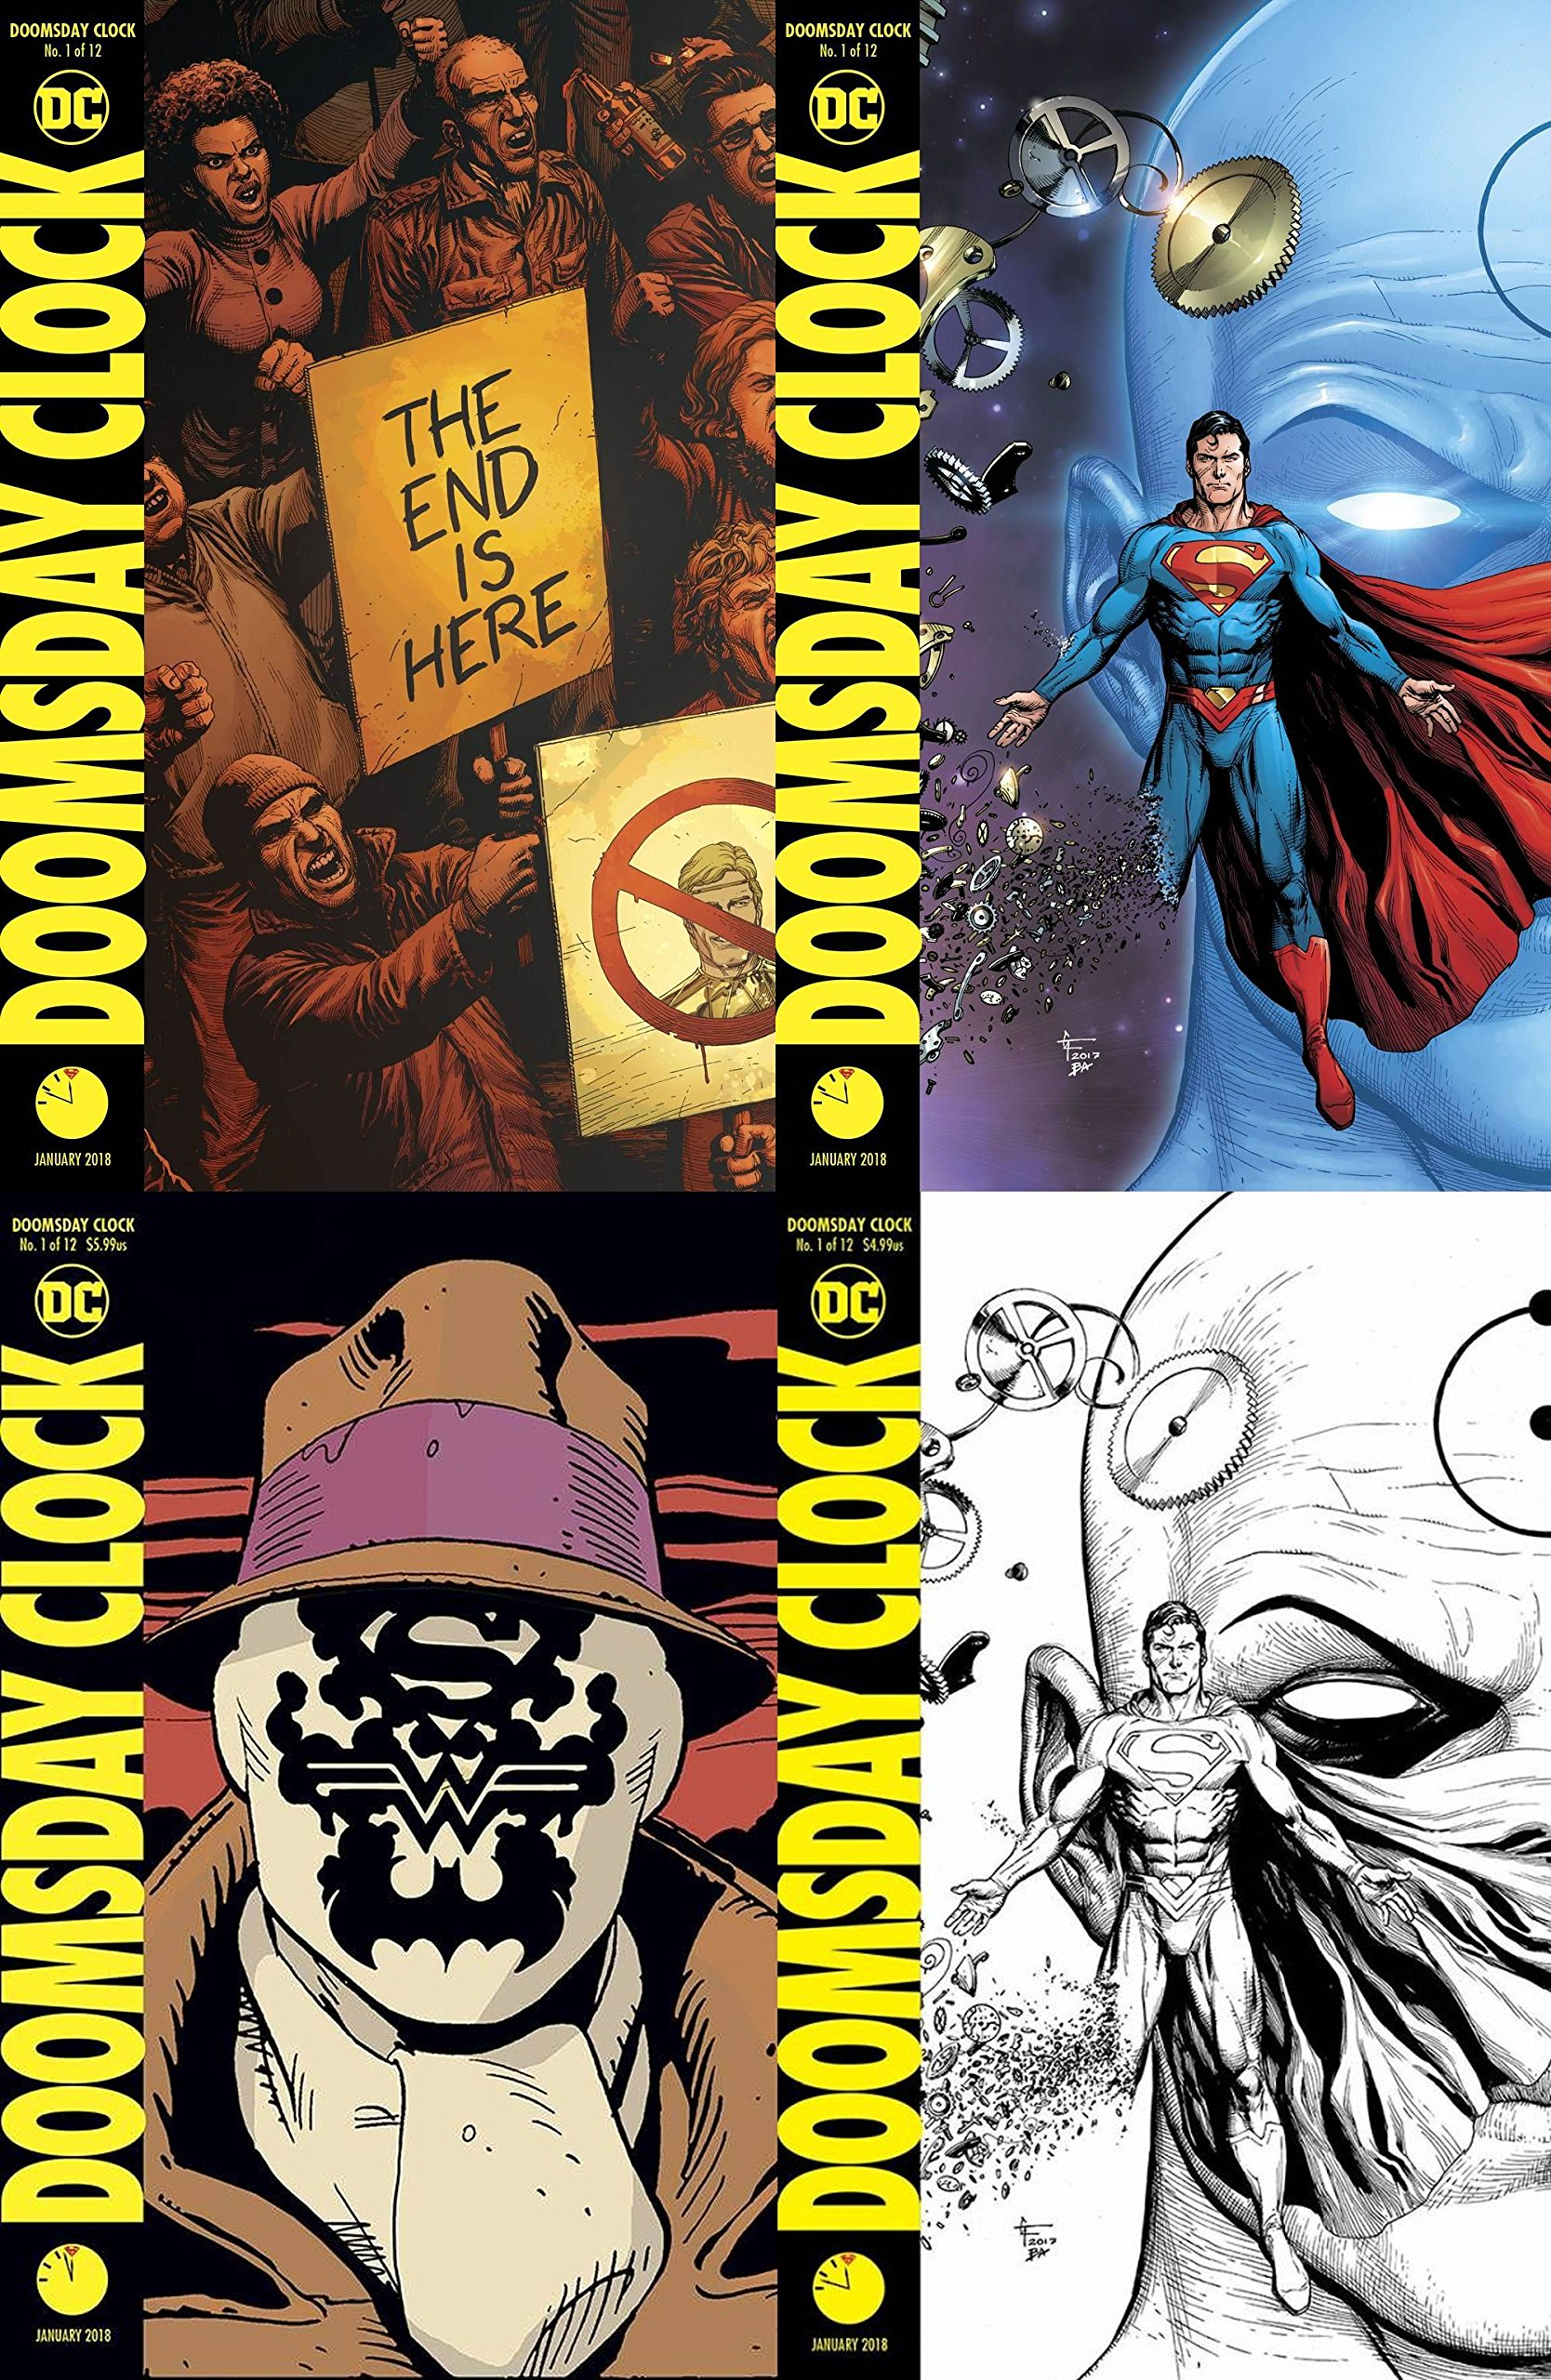 Doomsday Clock 1 Of 12 Cover Set Release Date 11 22 17 Amazon